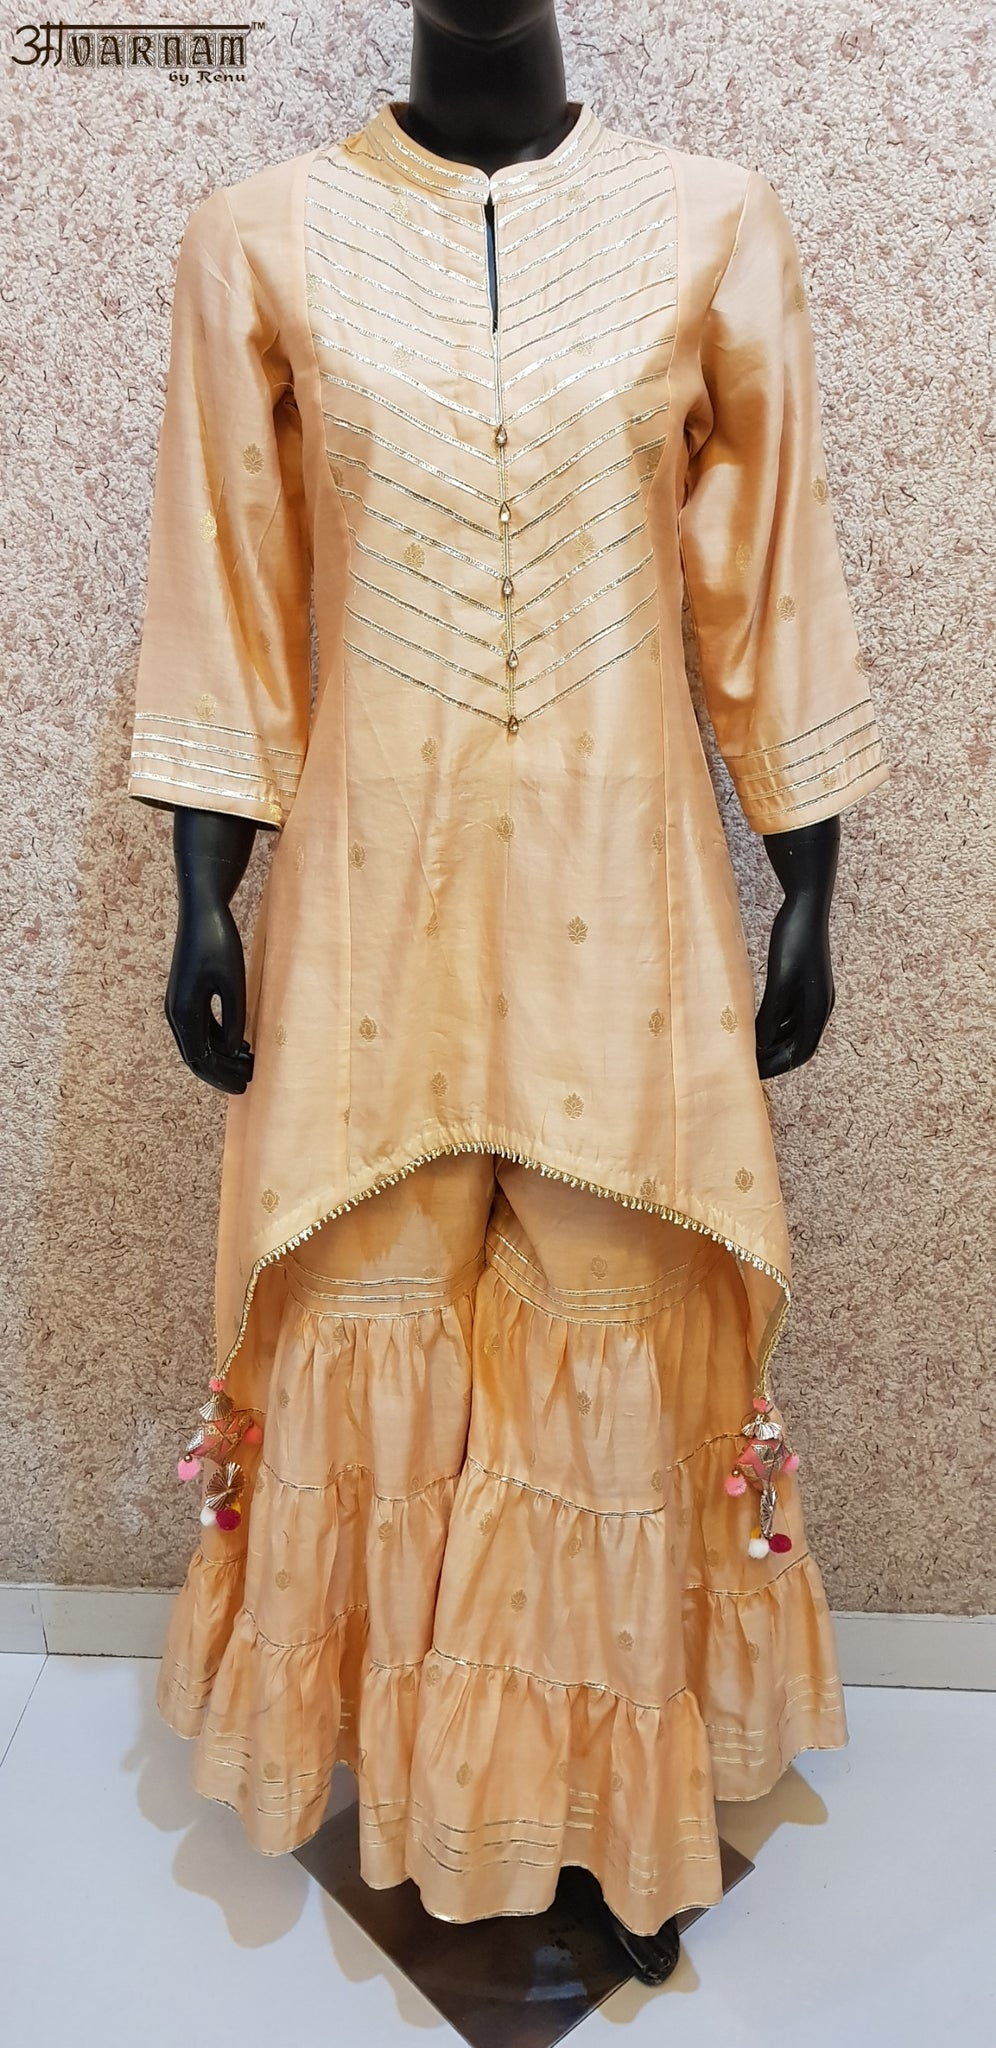 Aavarnam By Renu - Gotta Work C-Cut Shirt With Gharara - 2848D00031